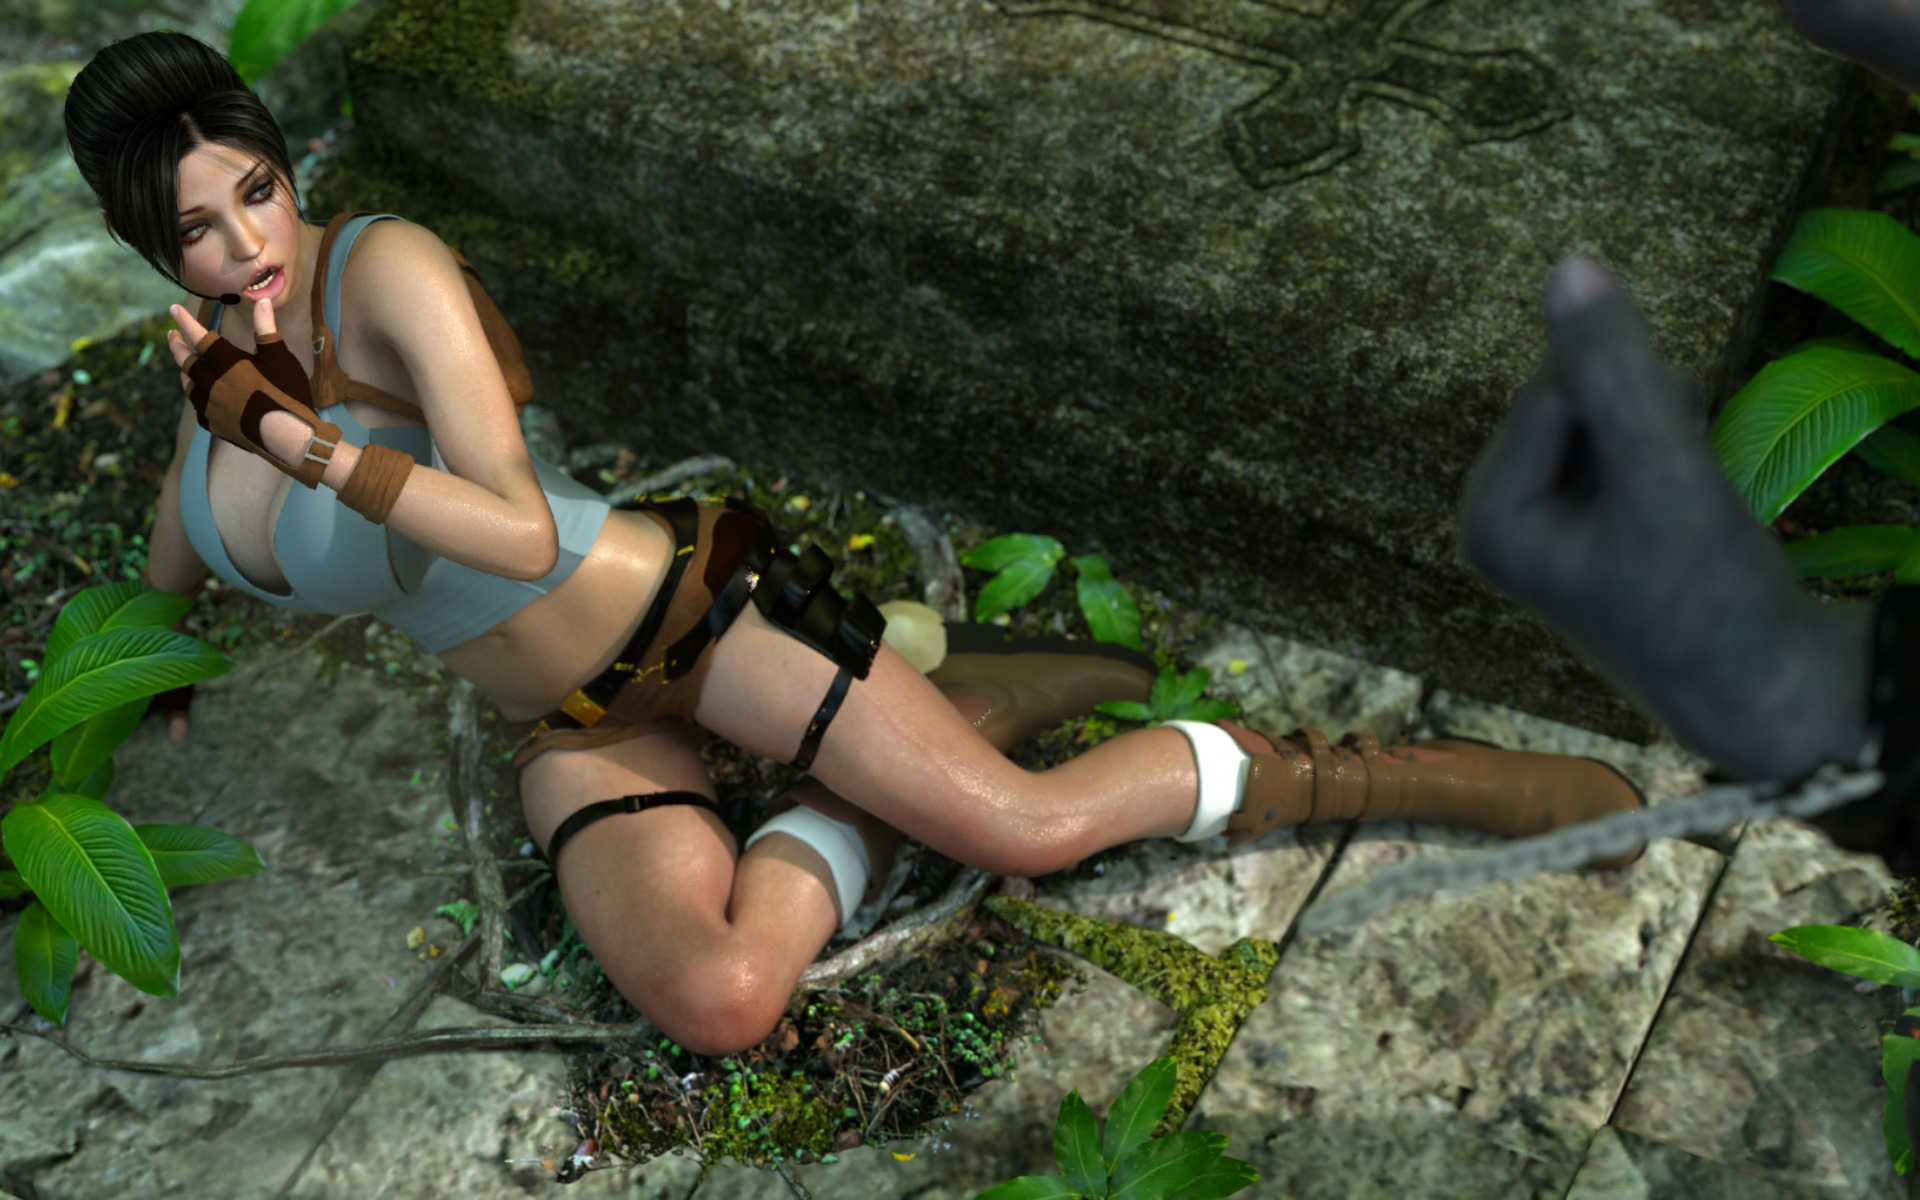 Lara croft in trouble fucked adult comics